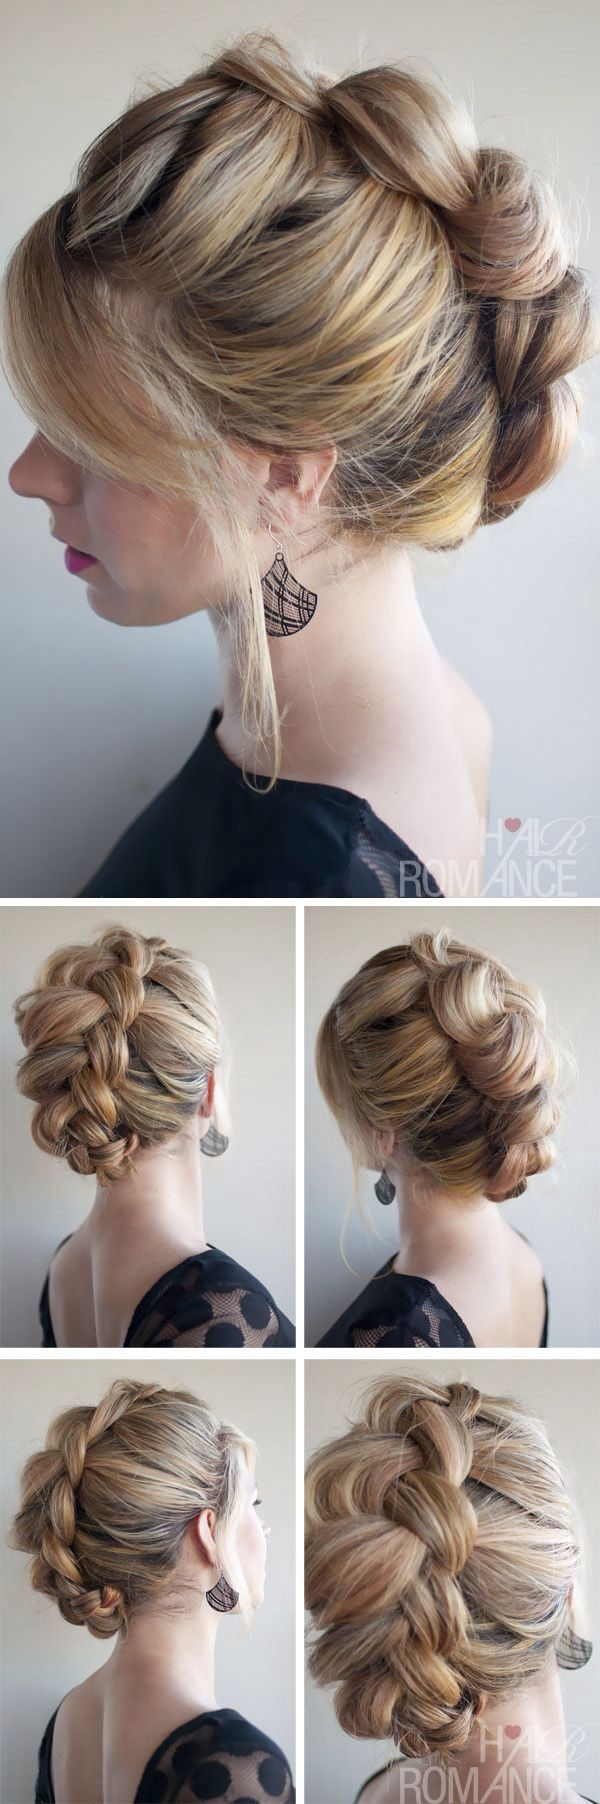 Wish i could do this my hair is probably too long though hair